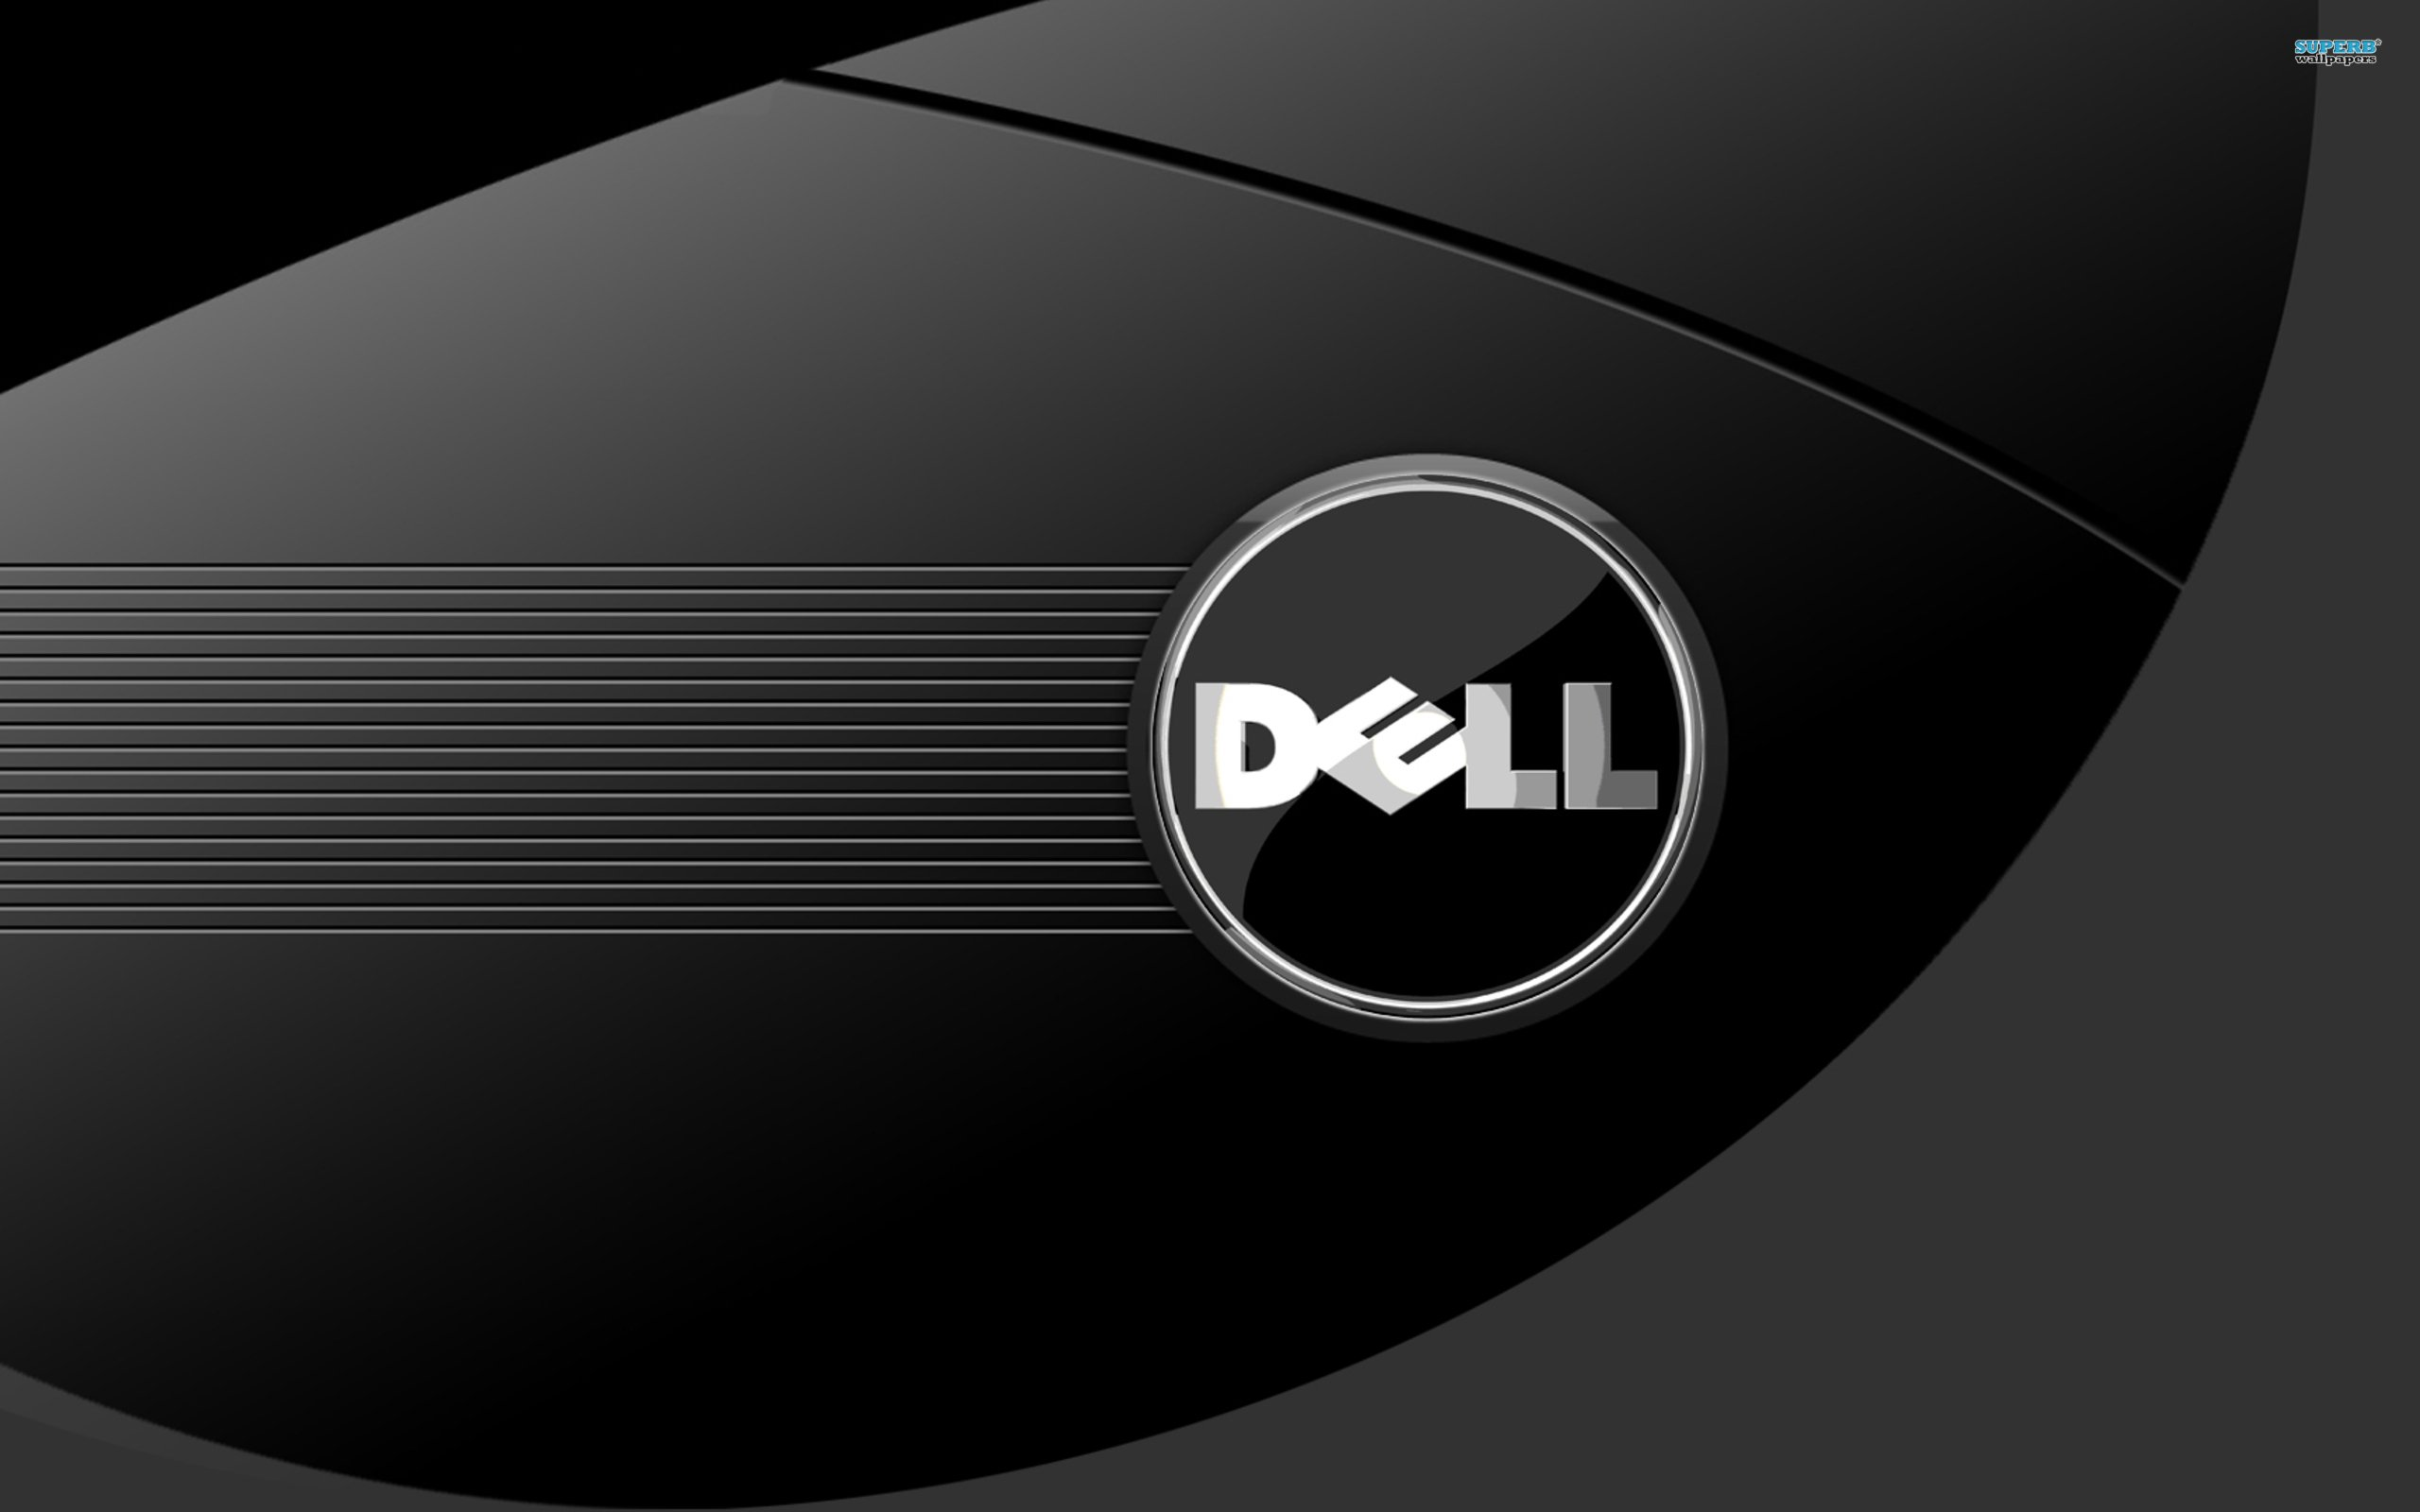 Very happy with the Dell computer. I had purchased a new PC with win 10 installed and soon became frustrated and very angry with what I feel is a lousy ops system.